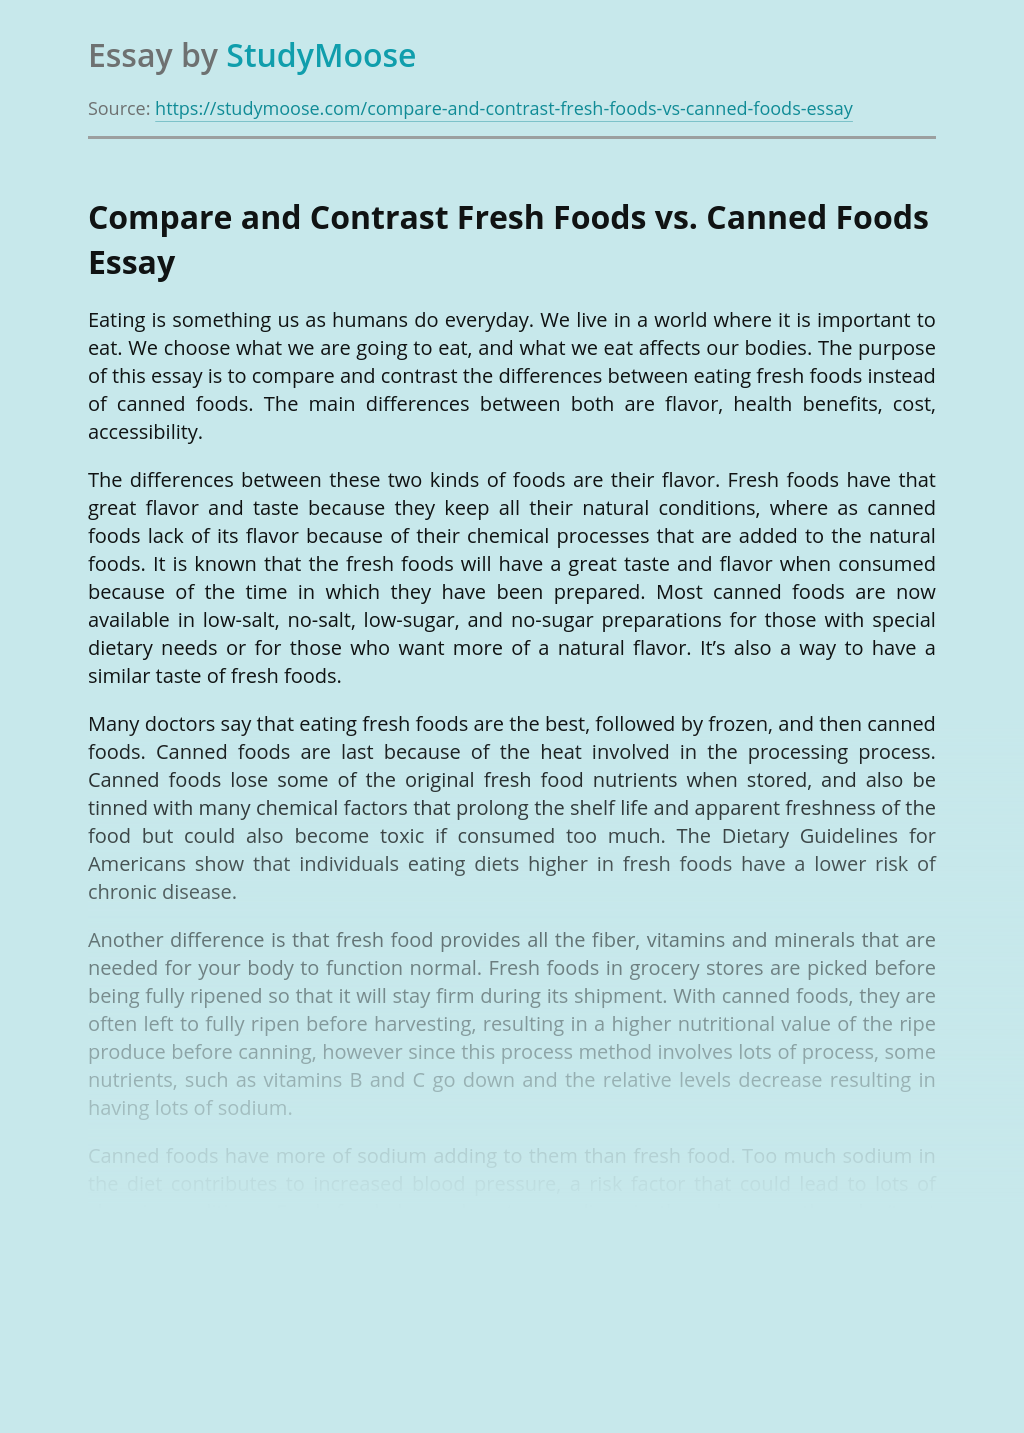 Compare and Contrast Fresh Foods vs. Canned Foods